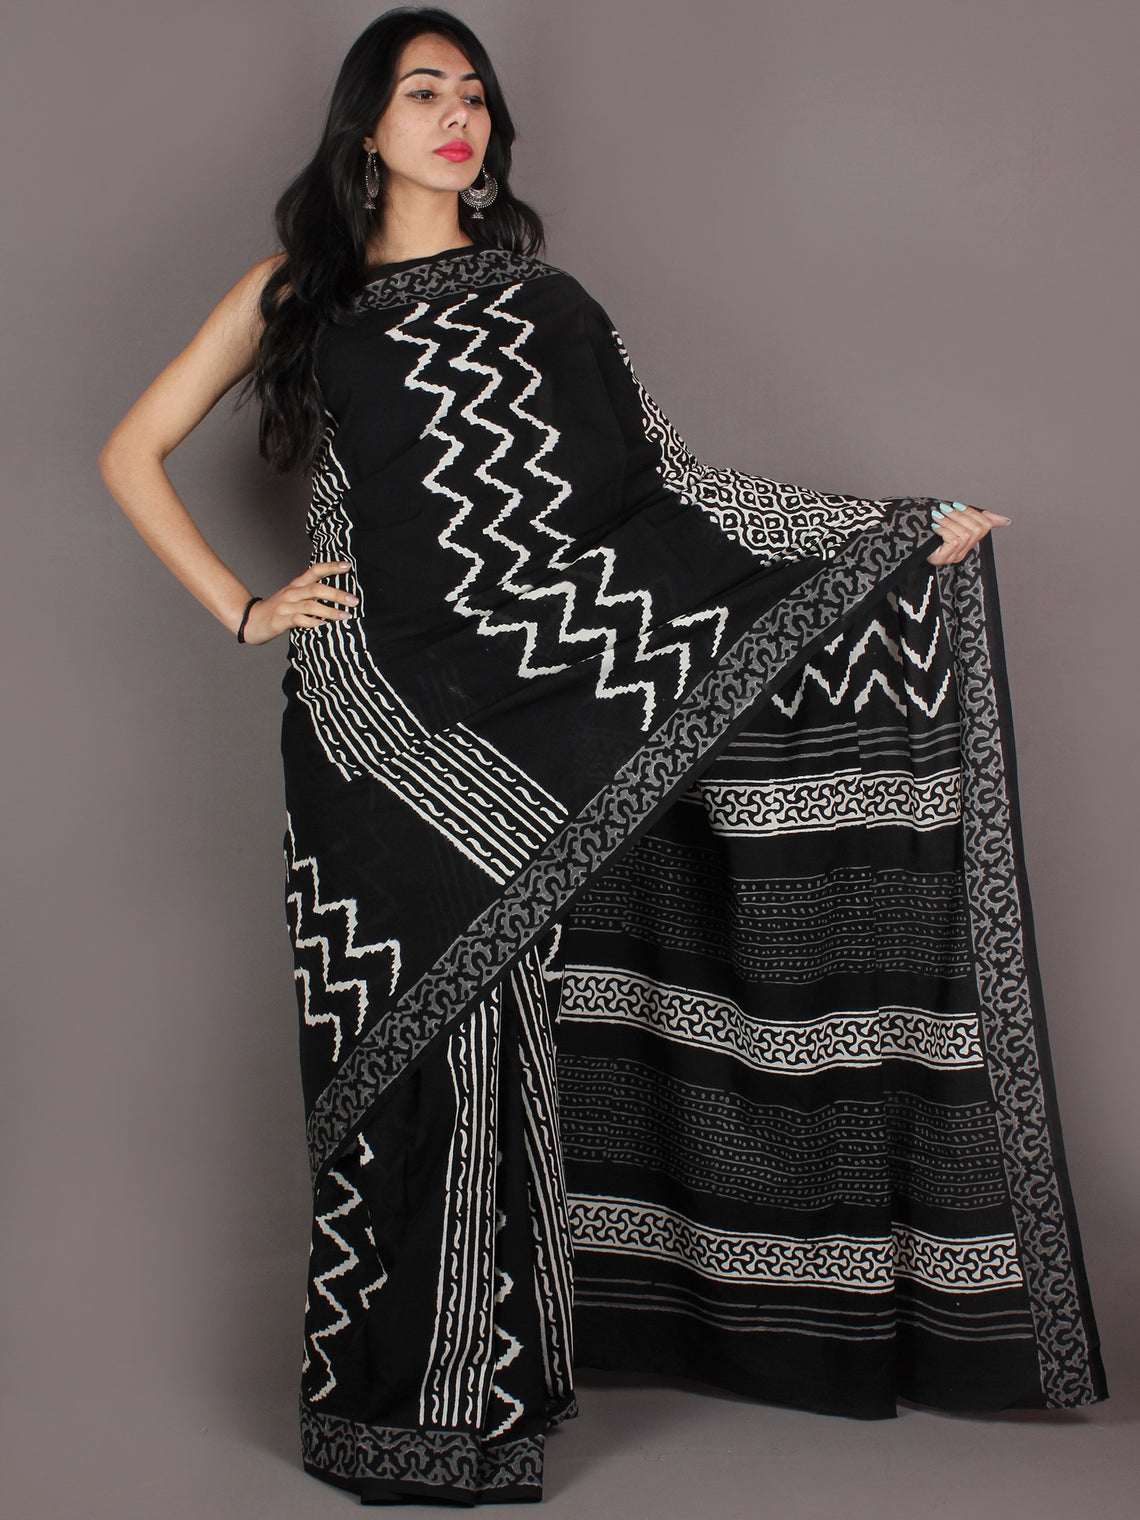 Black Grey White Hand Block Printed in Natural Colors Cotton Mul Saree - S03170930